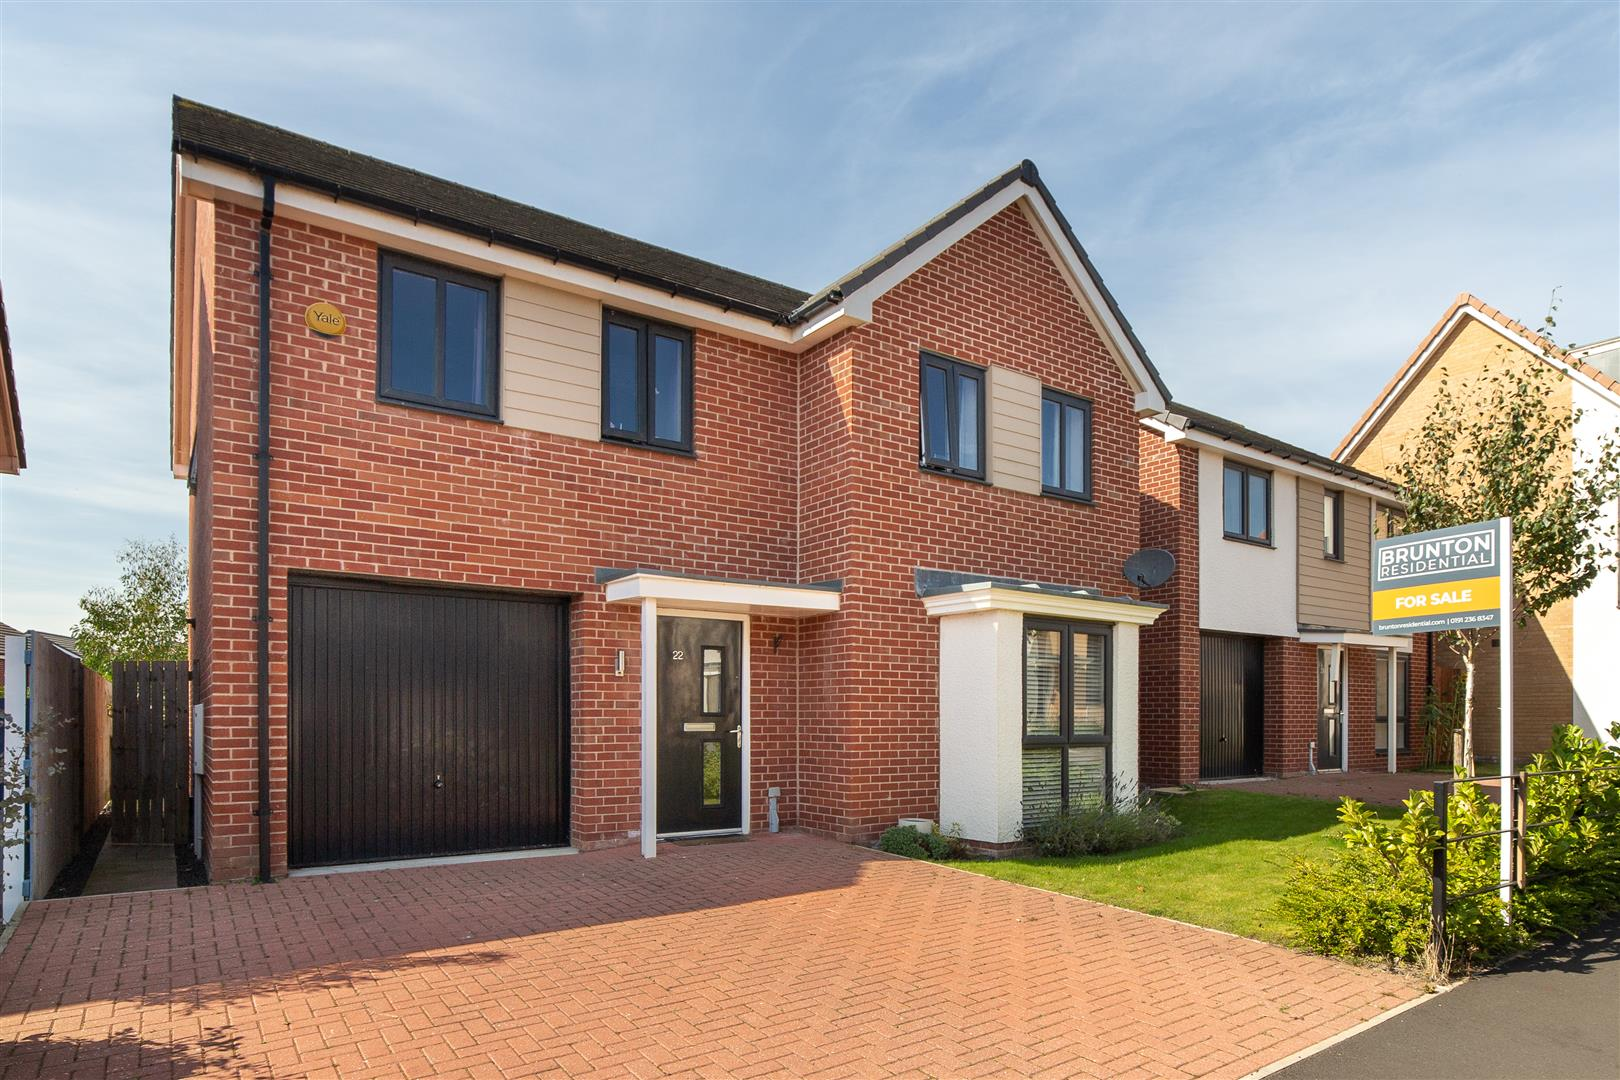 4 bed detached house for sale in Newcastle Upon Tyne, NE13 9BY  - Property Image 1